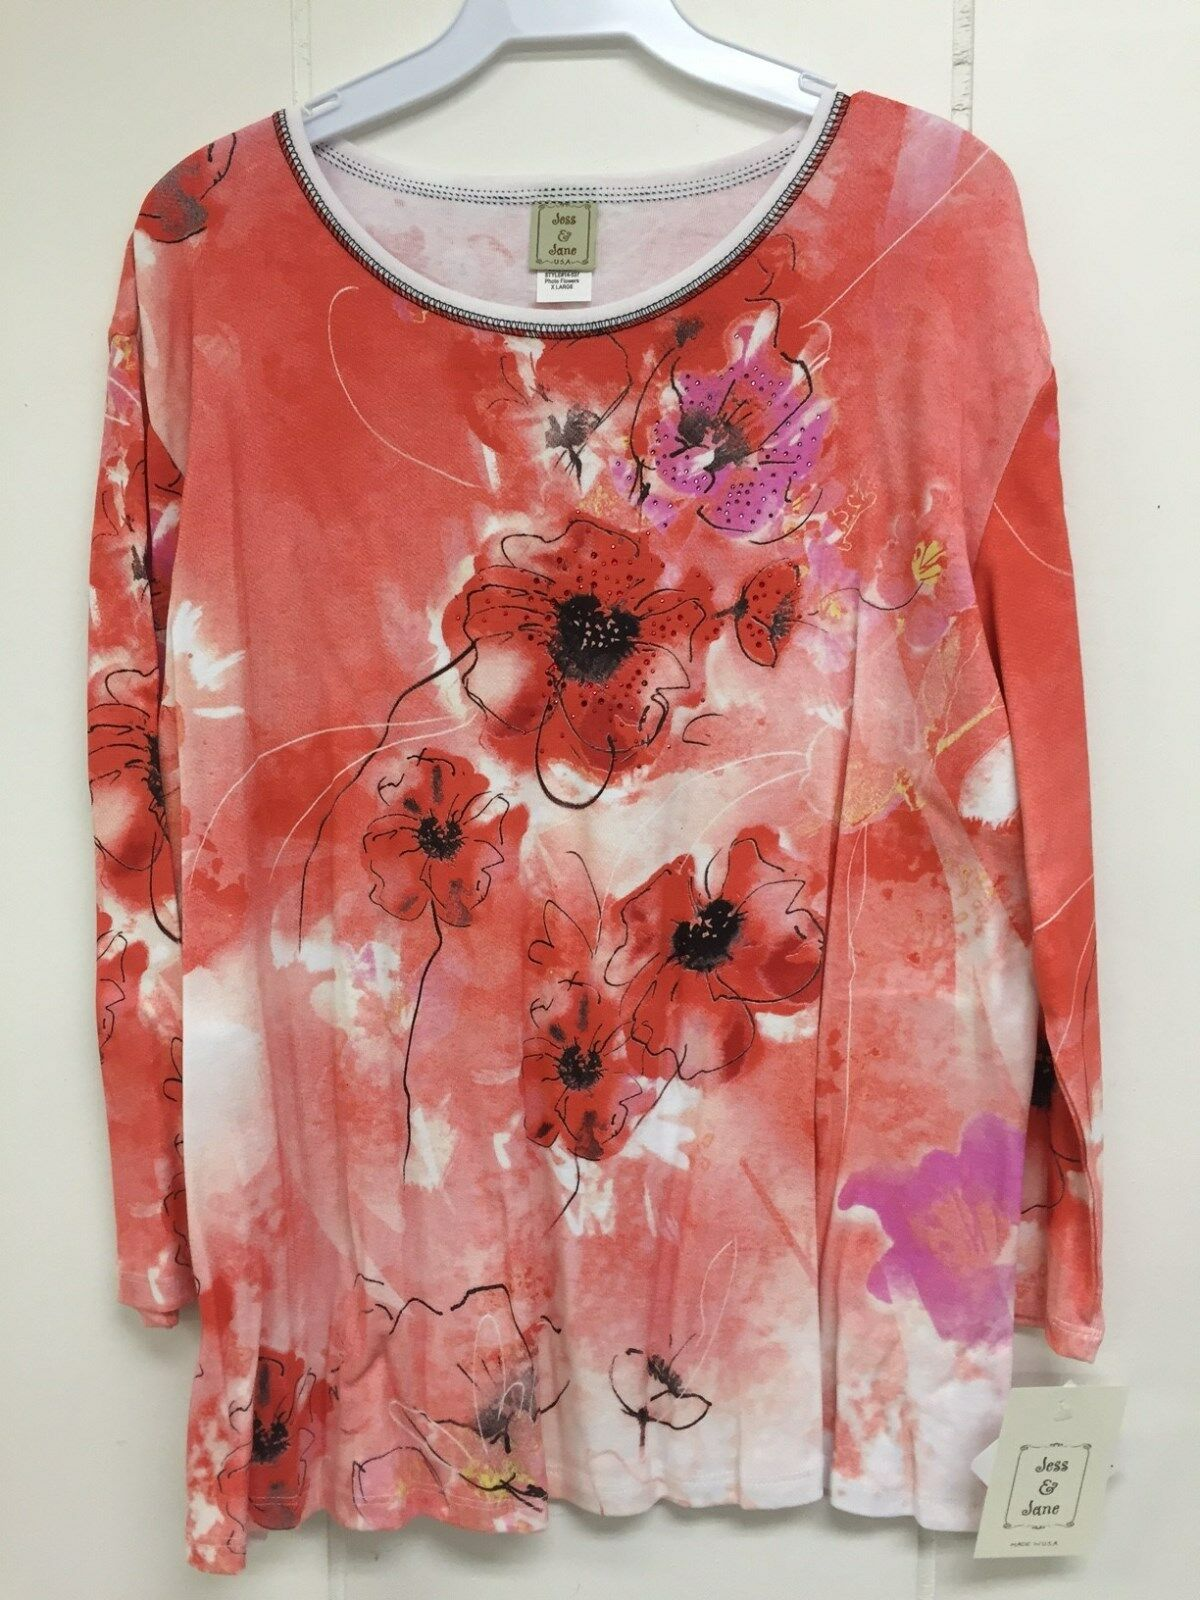 Jess and Jane Photo Flowers orange Floral Shirt Size Large L New with Tags